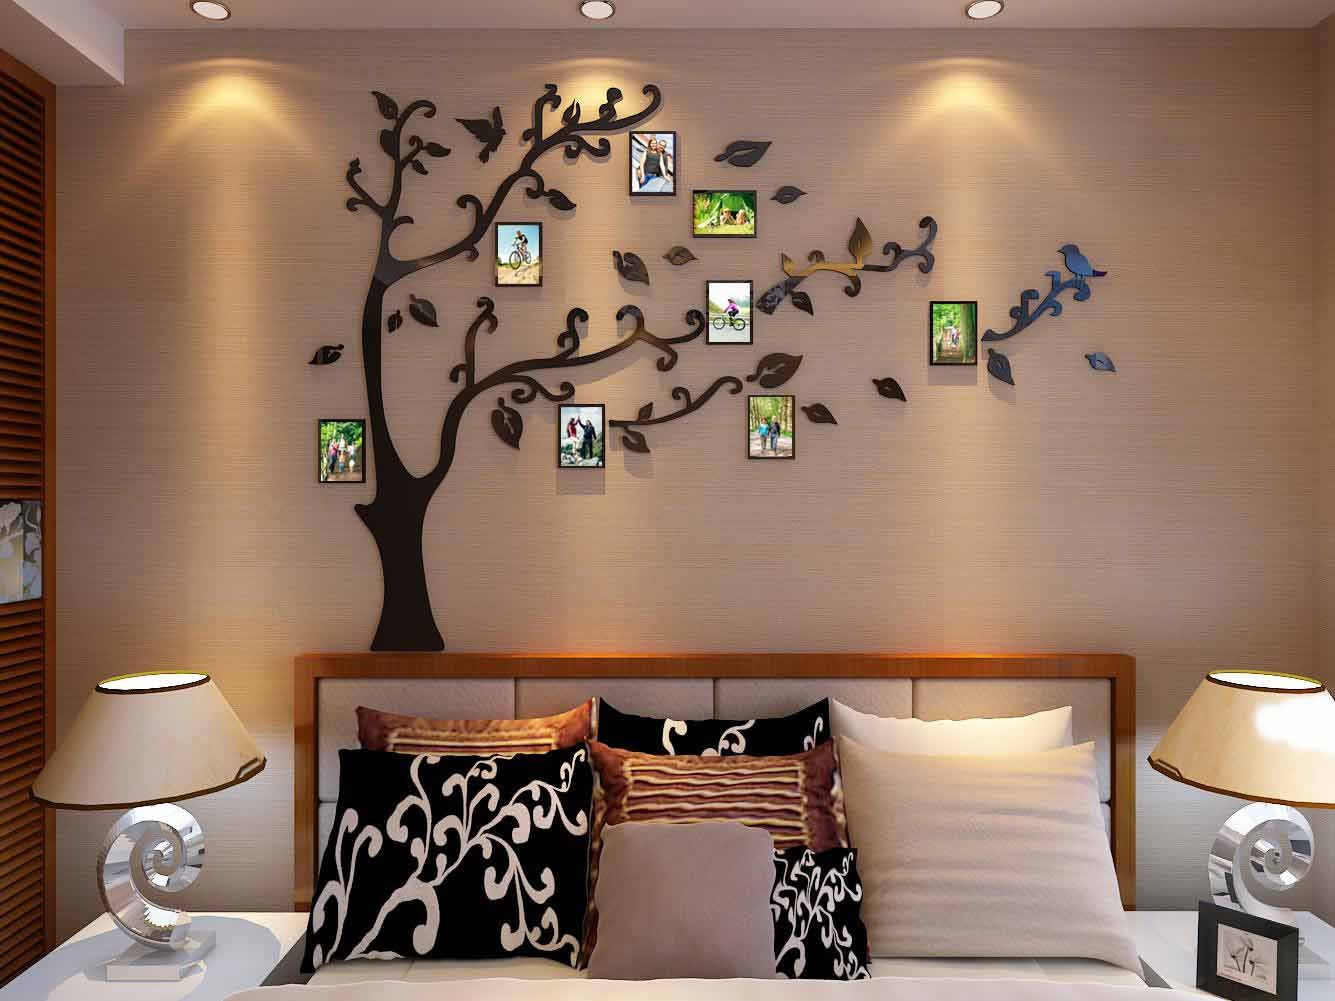 3d Picture Frames Tree Wall Murals for Living Room Bedroom Sofa Backdrop Tv Wall Background, Originality Stickers, Wall Decor Decal Sticker (50(H) x 70(W) inches) by DecorSmart (Image #5)